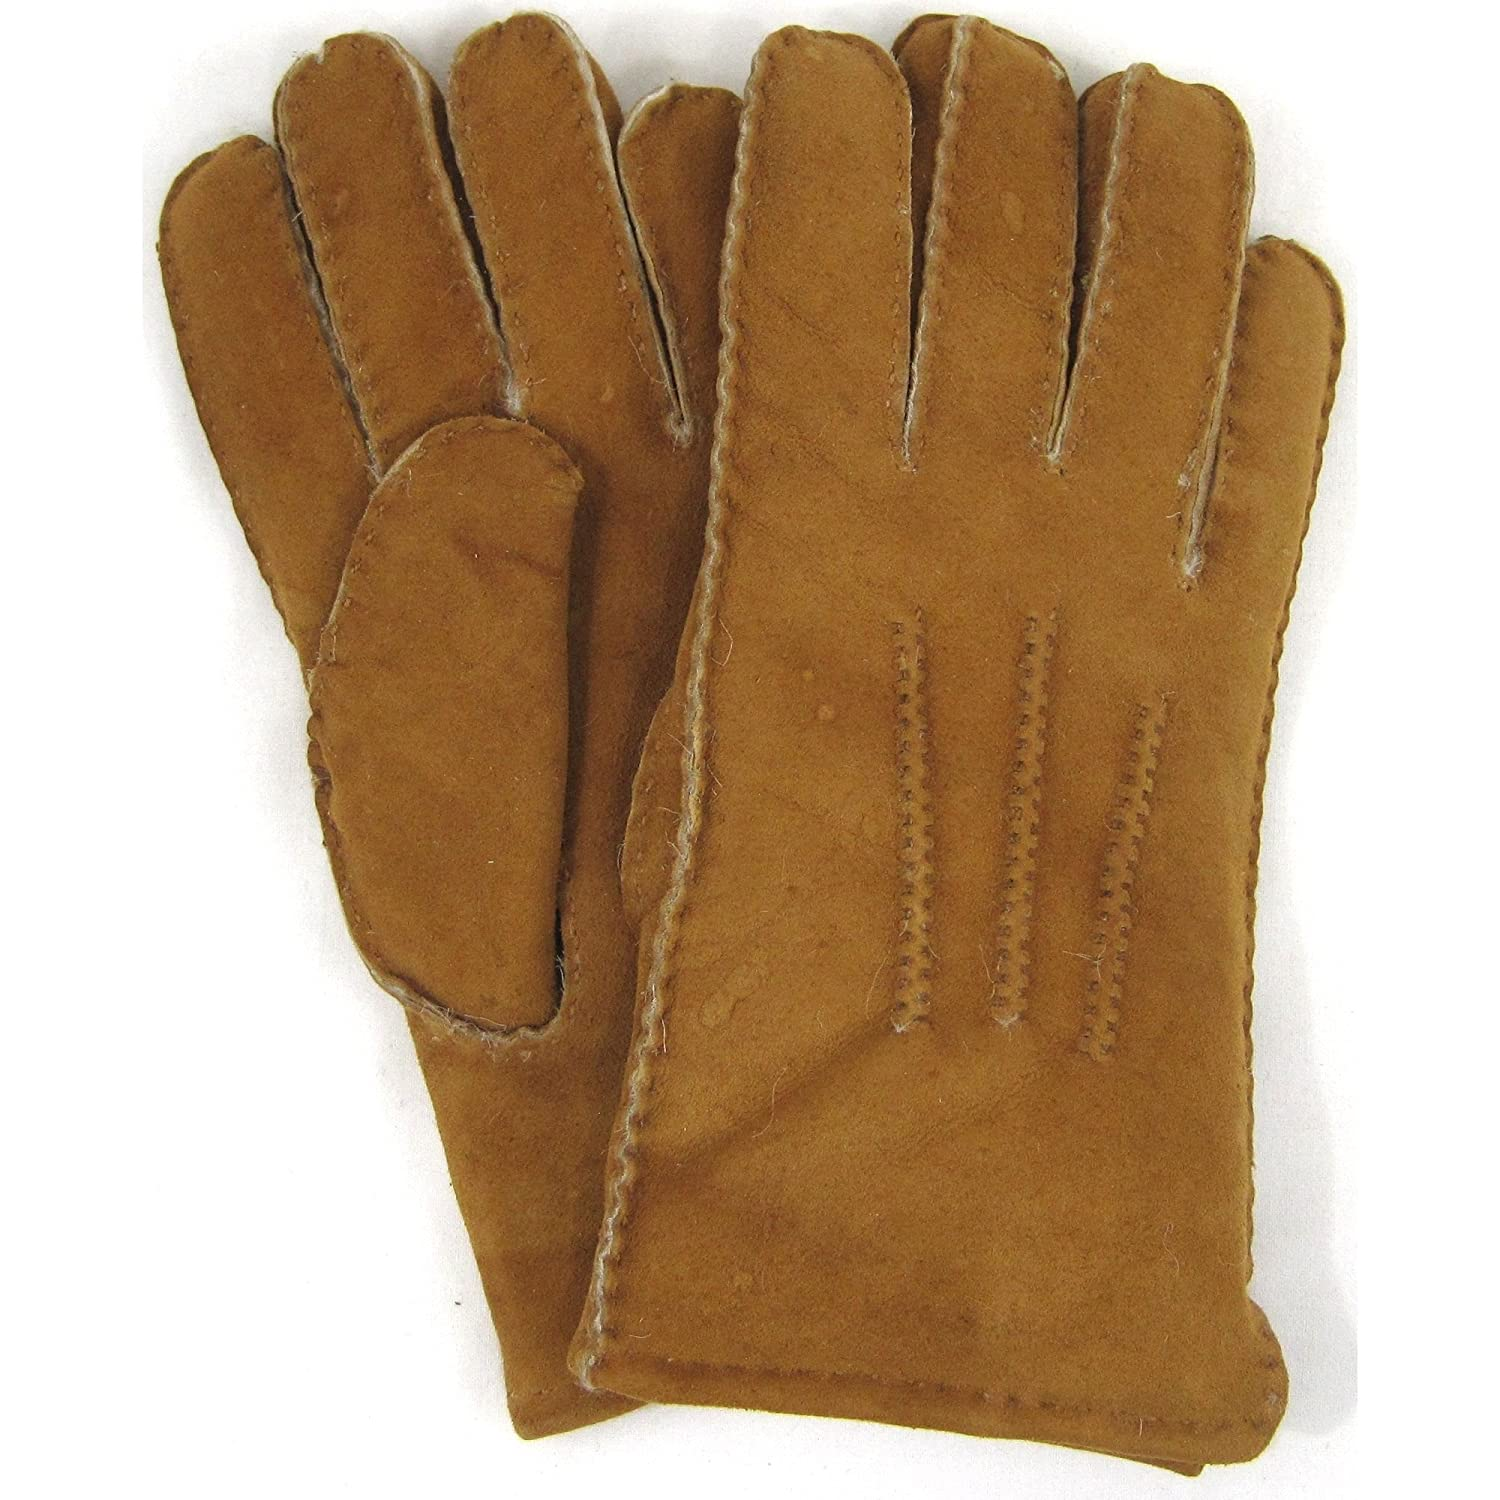 Mens gloves extra large - Mens Luxury Full Sheepskin Gloves Tan Sizes Small To Extra Large